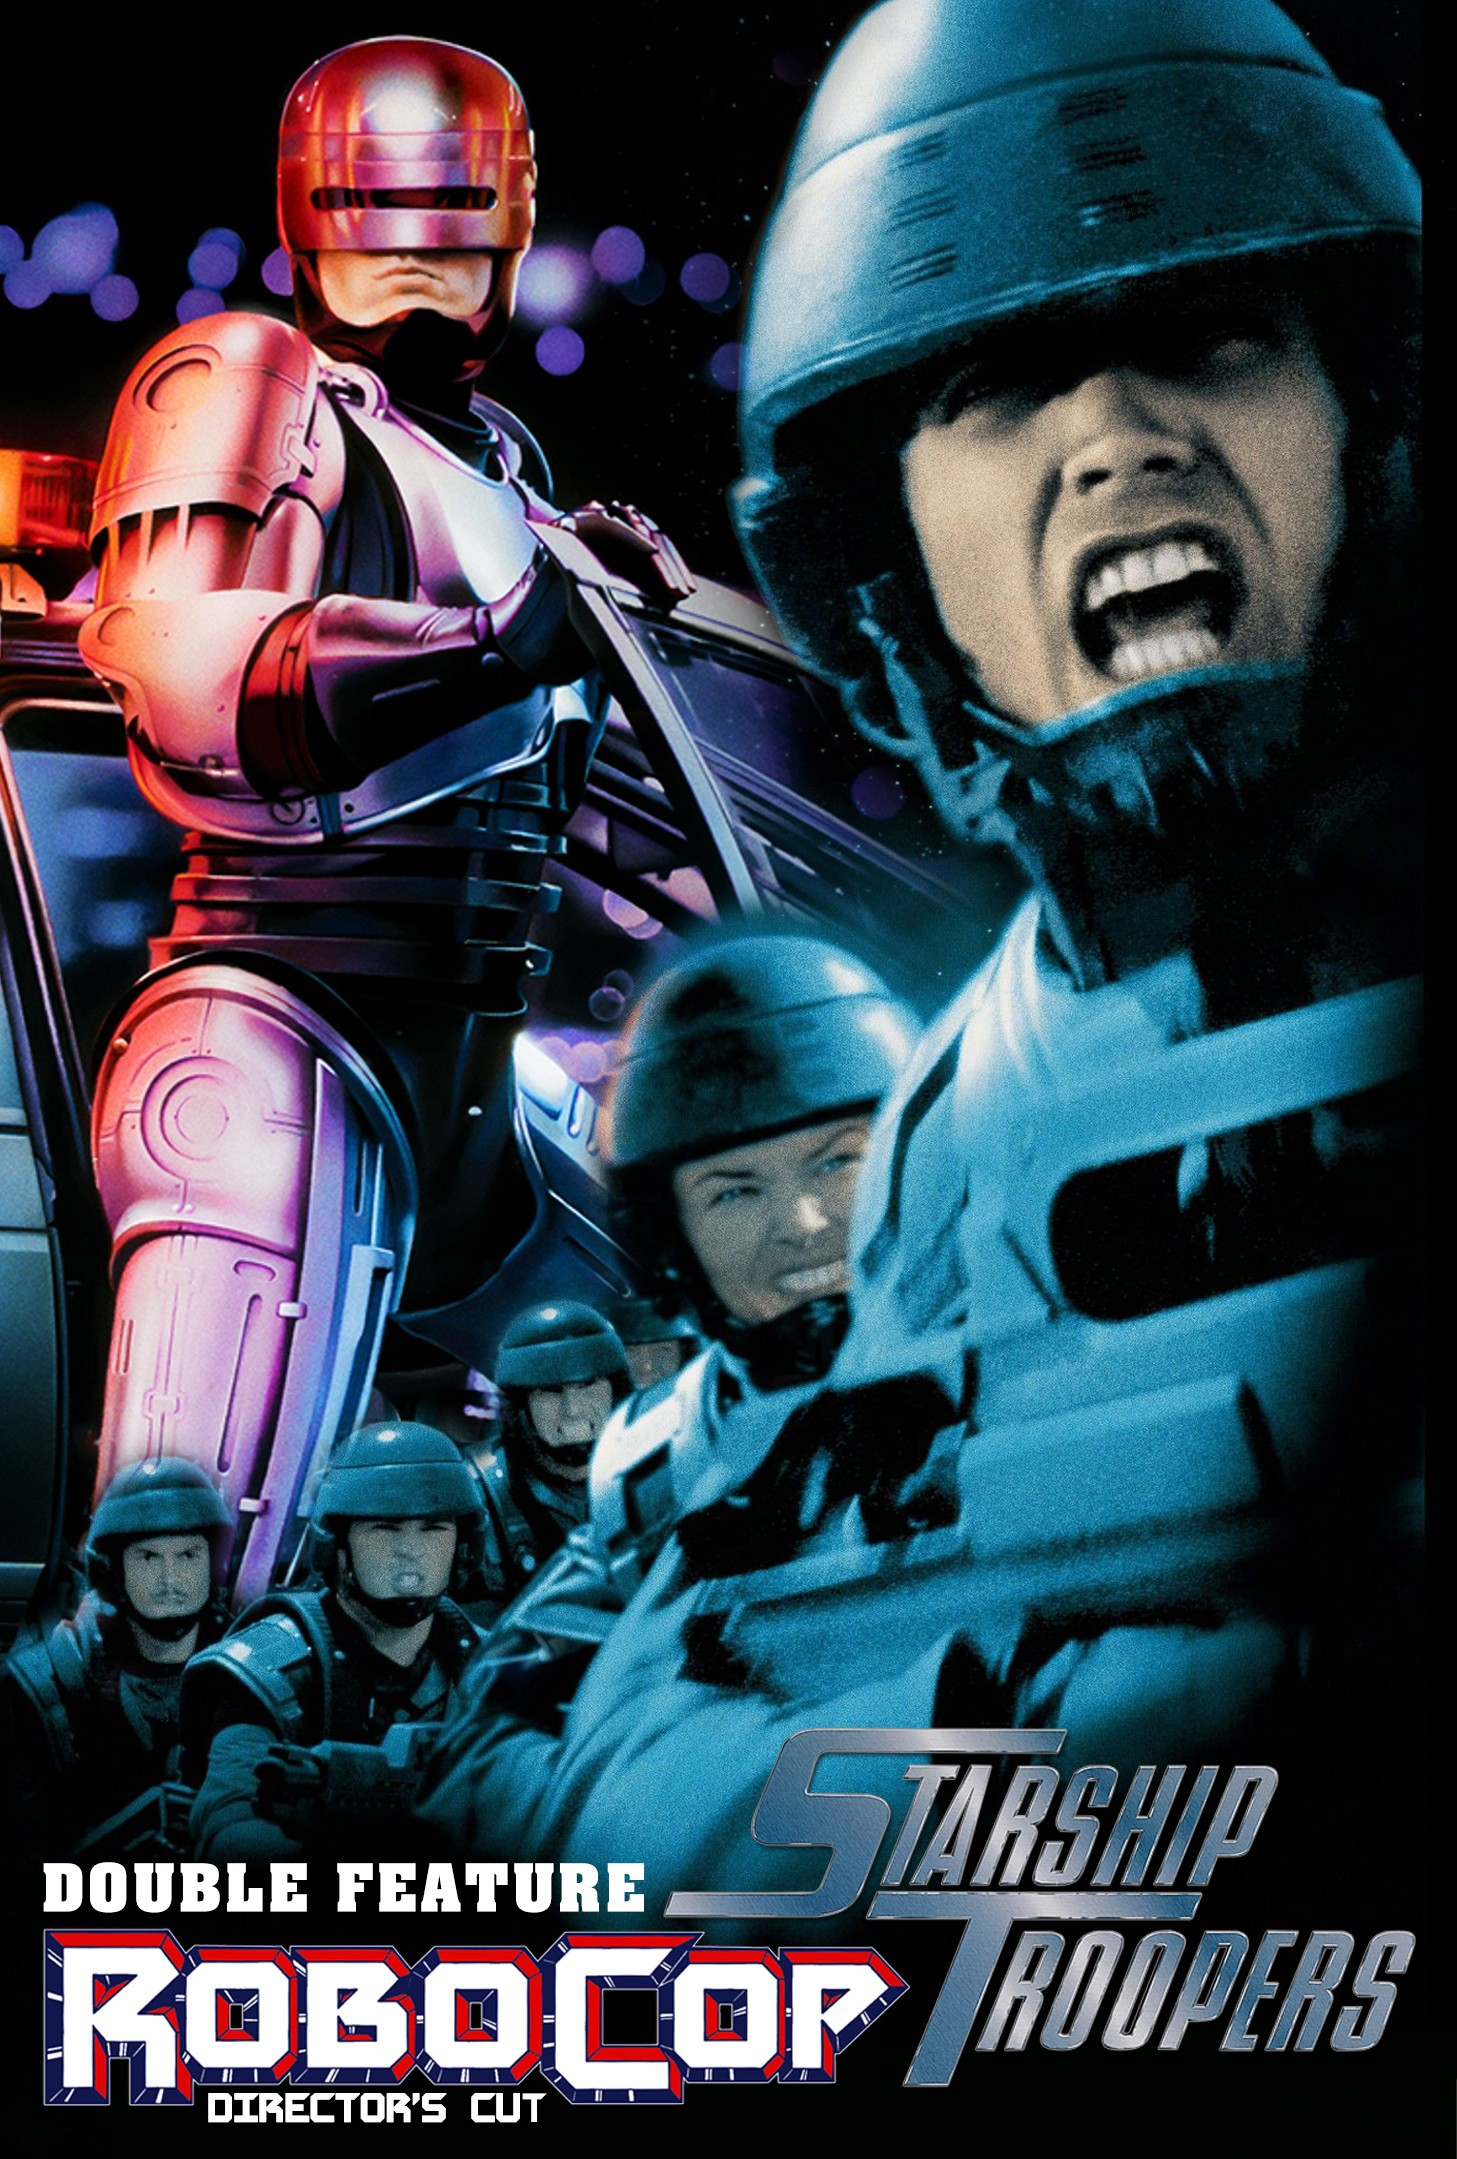 ROBOCOP [1987] & STARSHIP TROOPERS